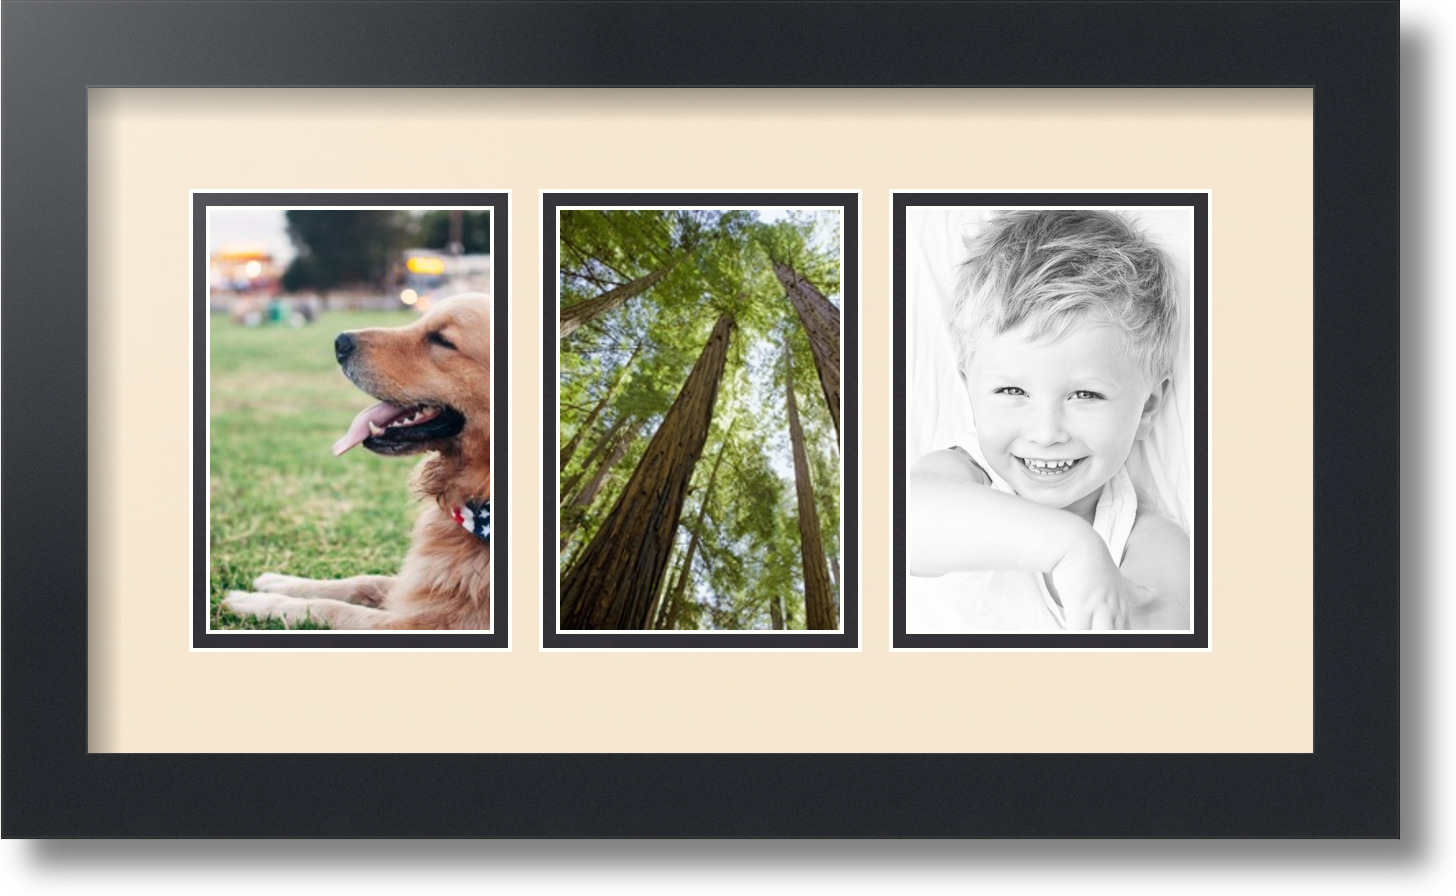 black frame outstanding custom for with picture choose ideas matting mat me color rustic cut videowat